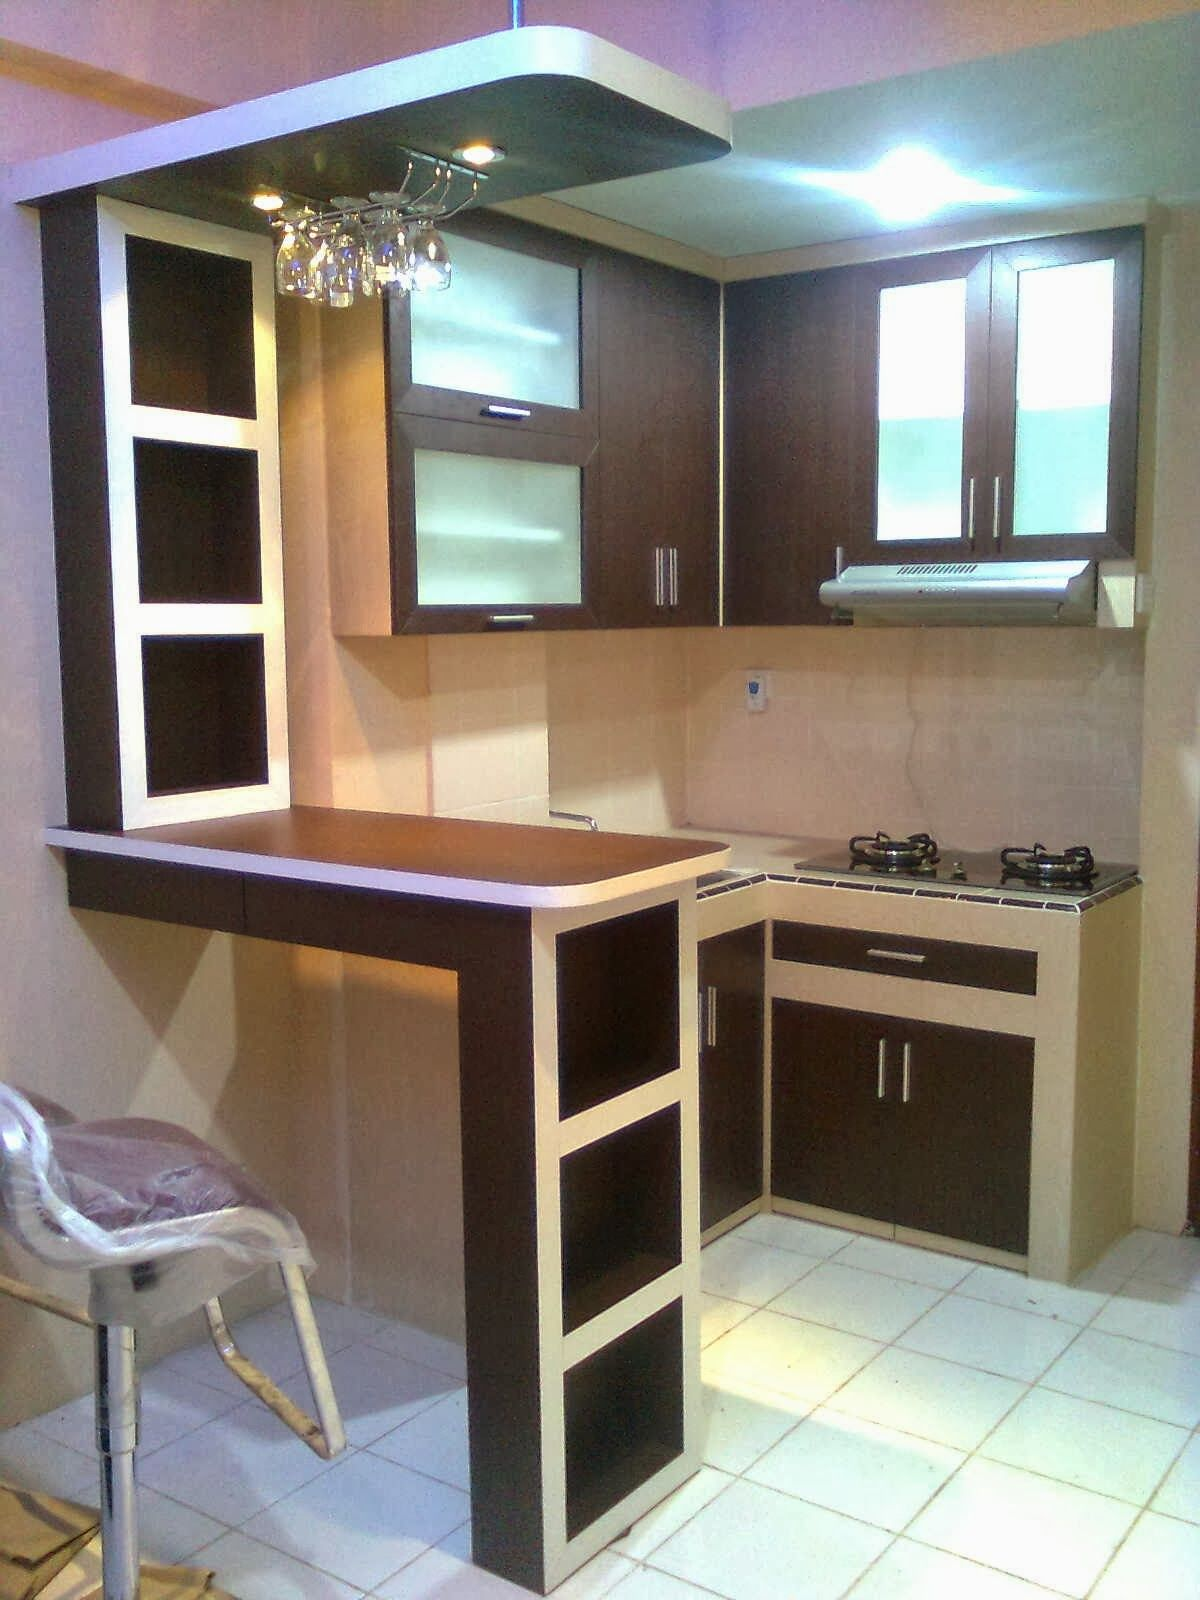 Harga kitchen set per meter kitchen set pinterest for Harga kitchen set aluminium per meter